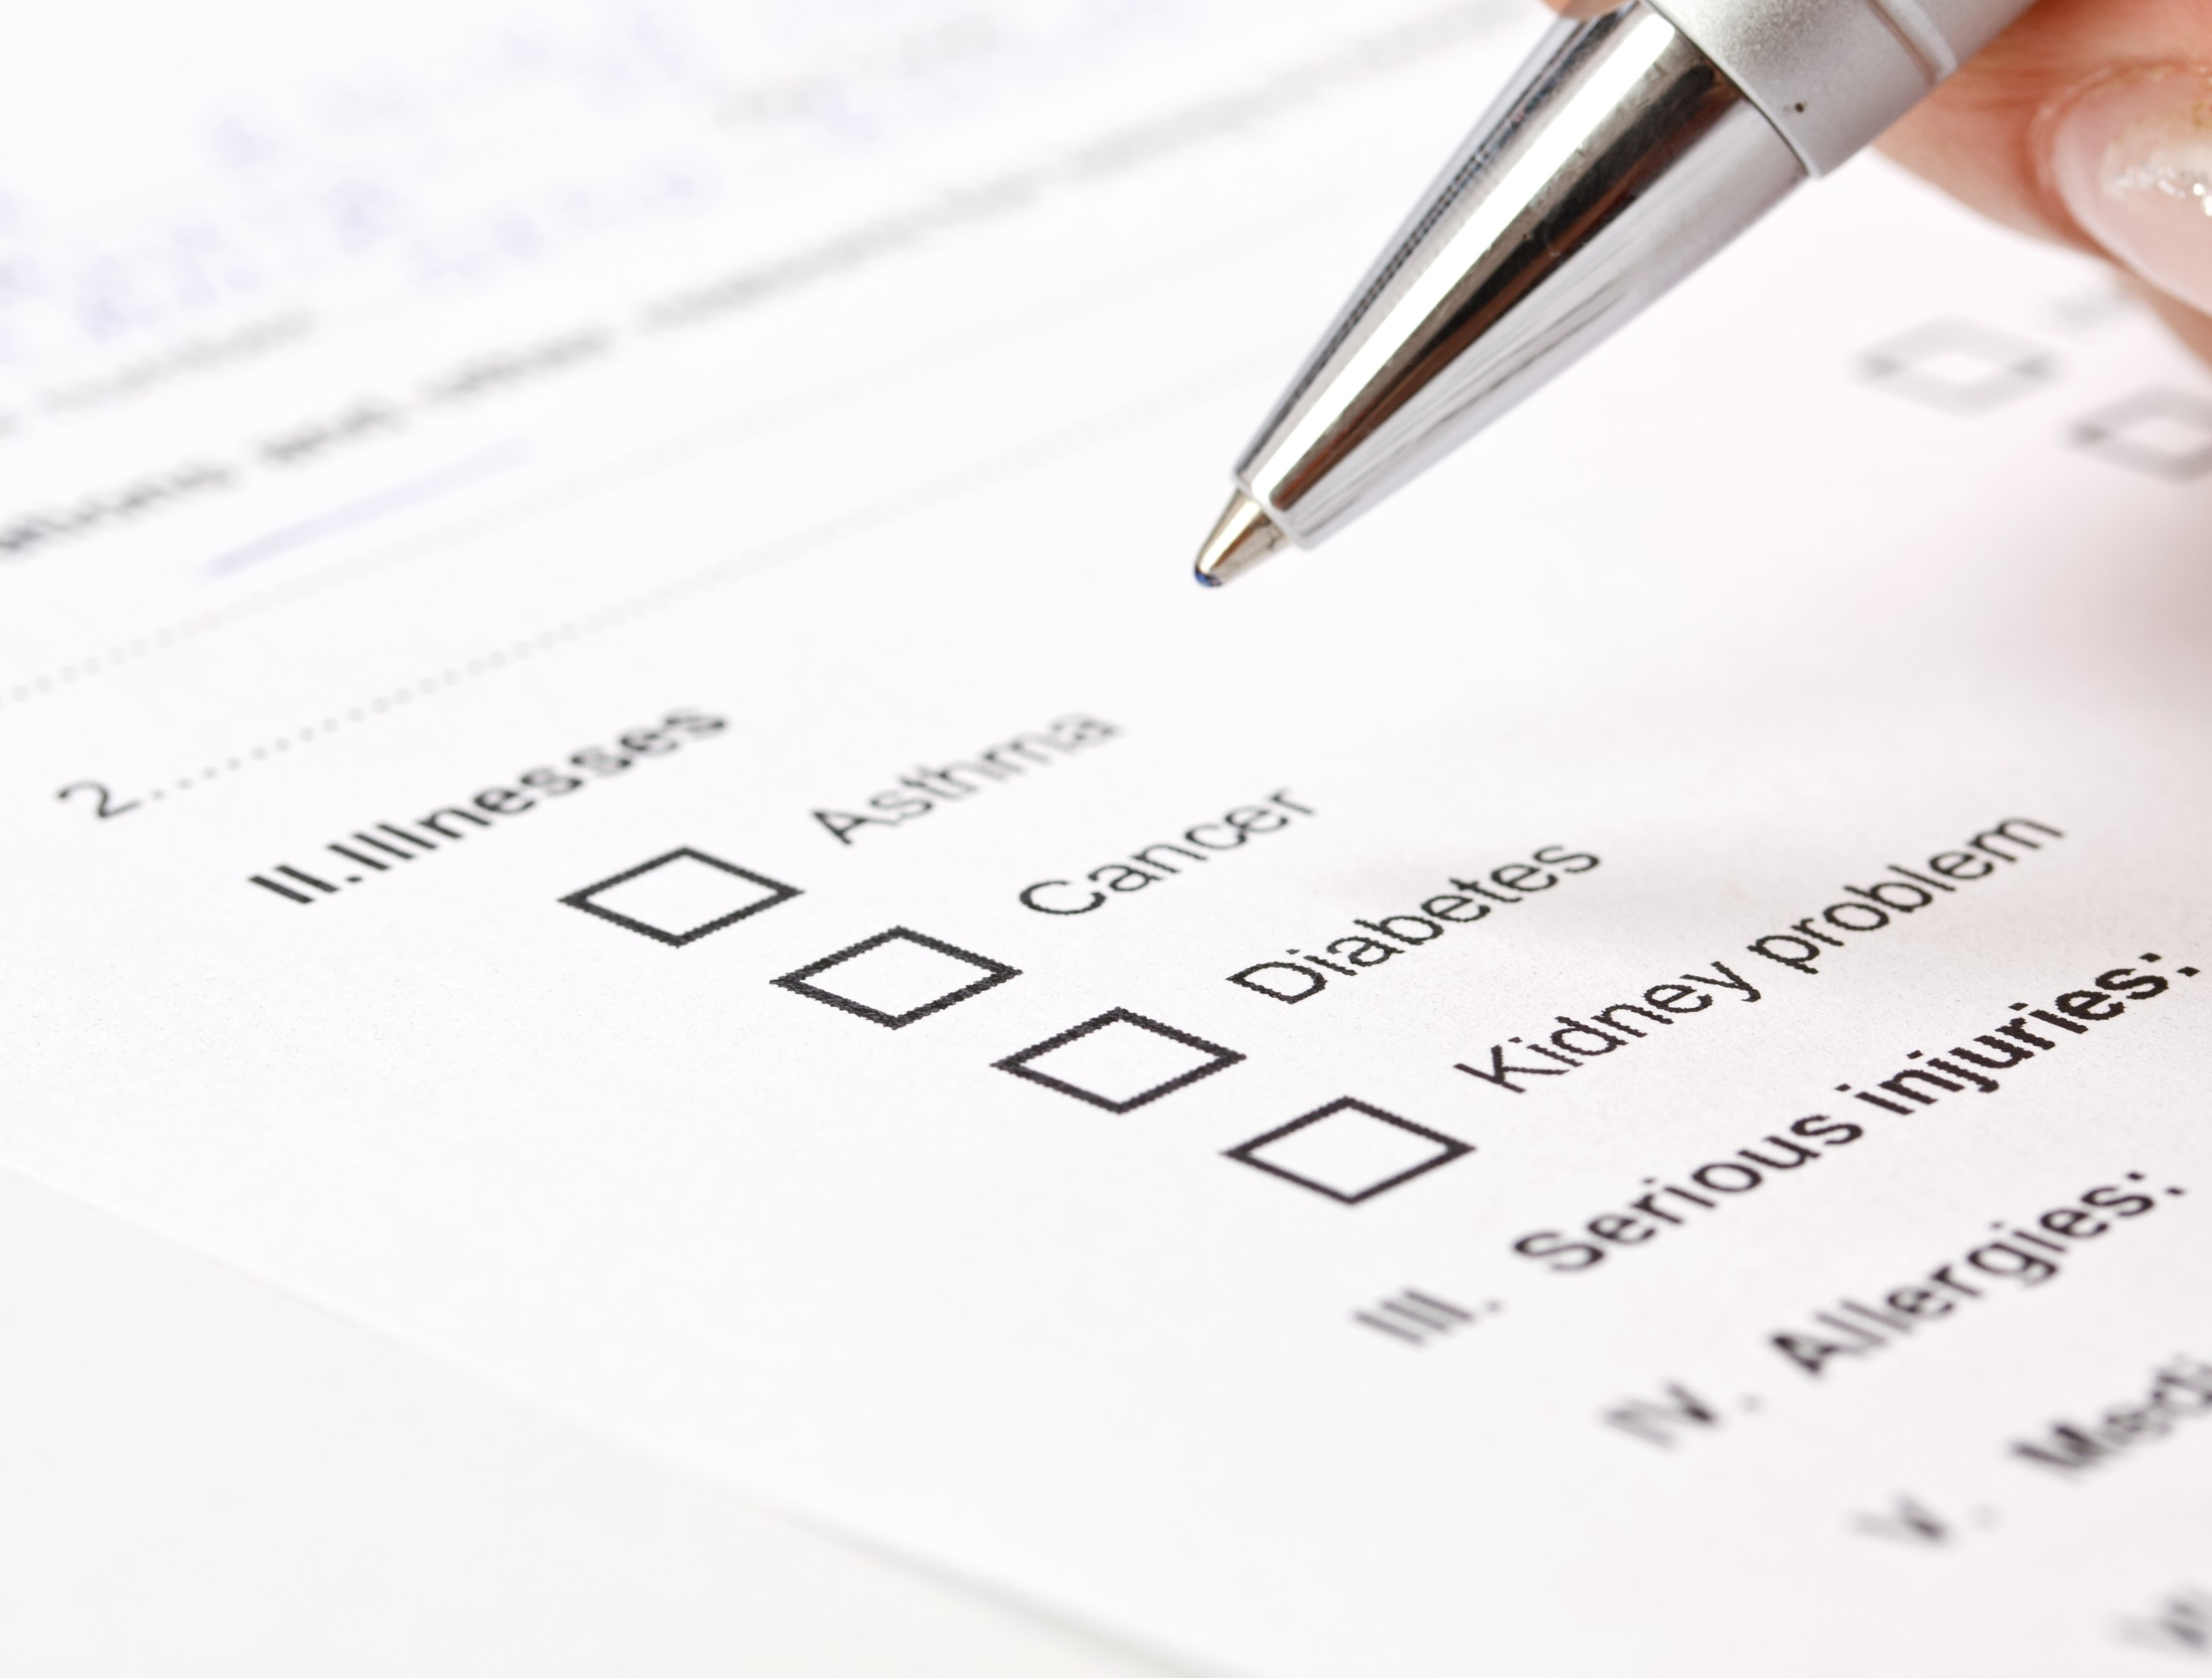 Close up photo of a medical history questionnaire